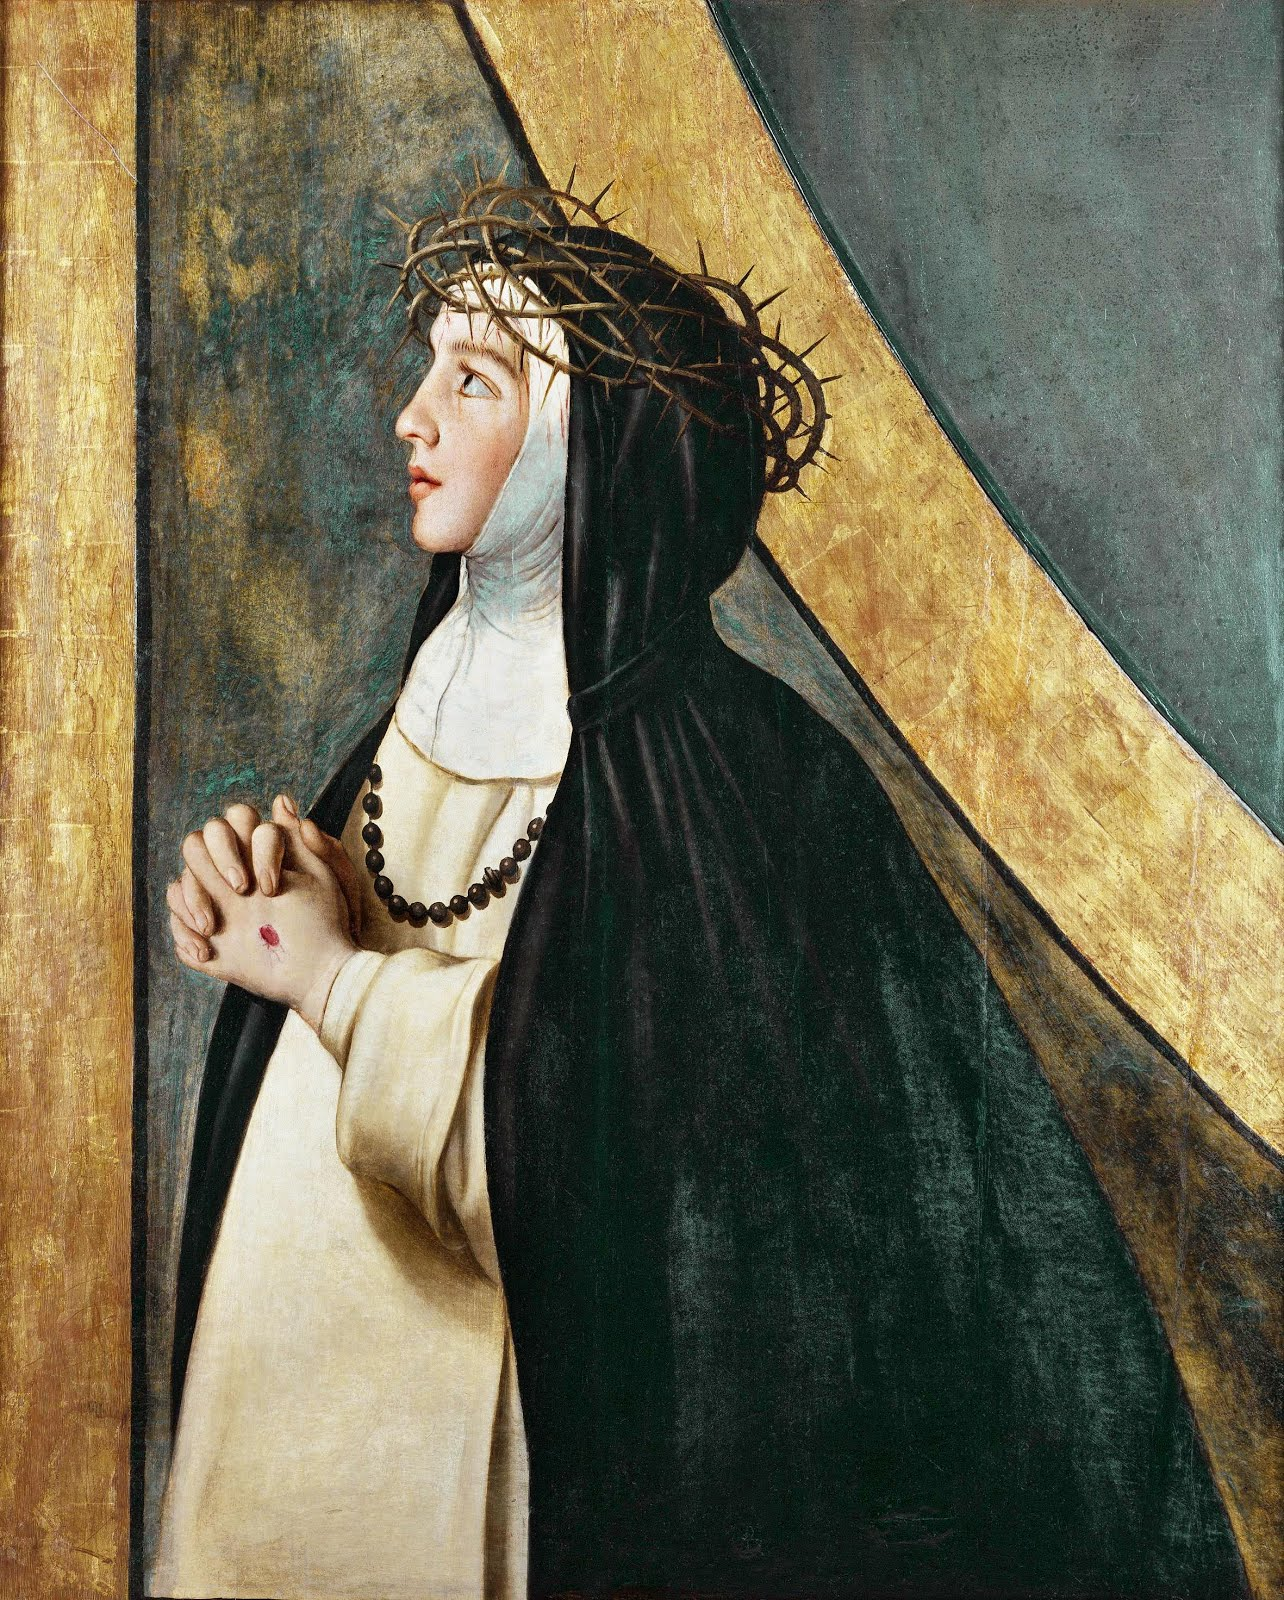 Saint Catherine of Siena – Patroness of Europe and Doctor of the Church